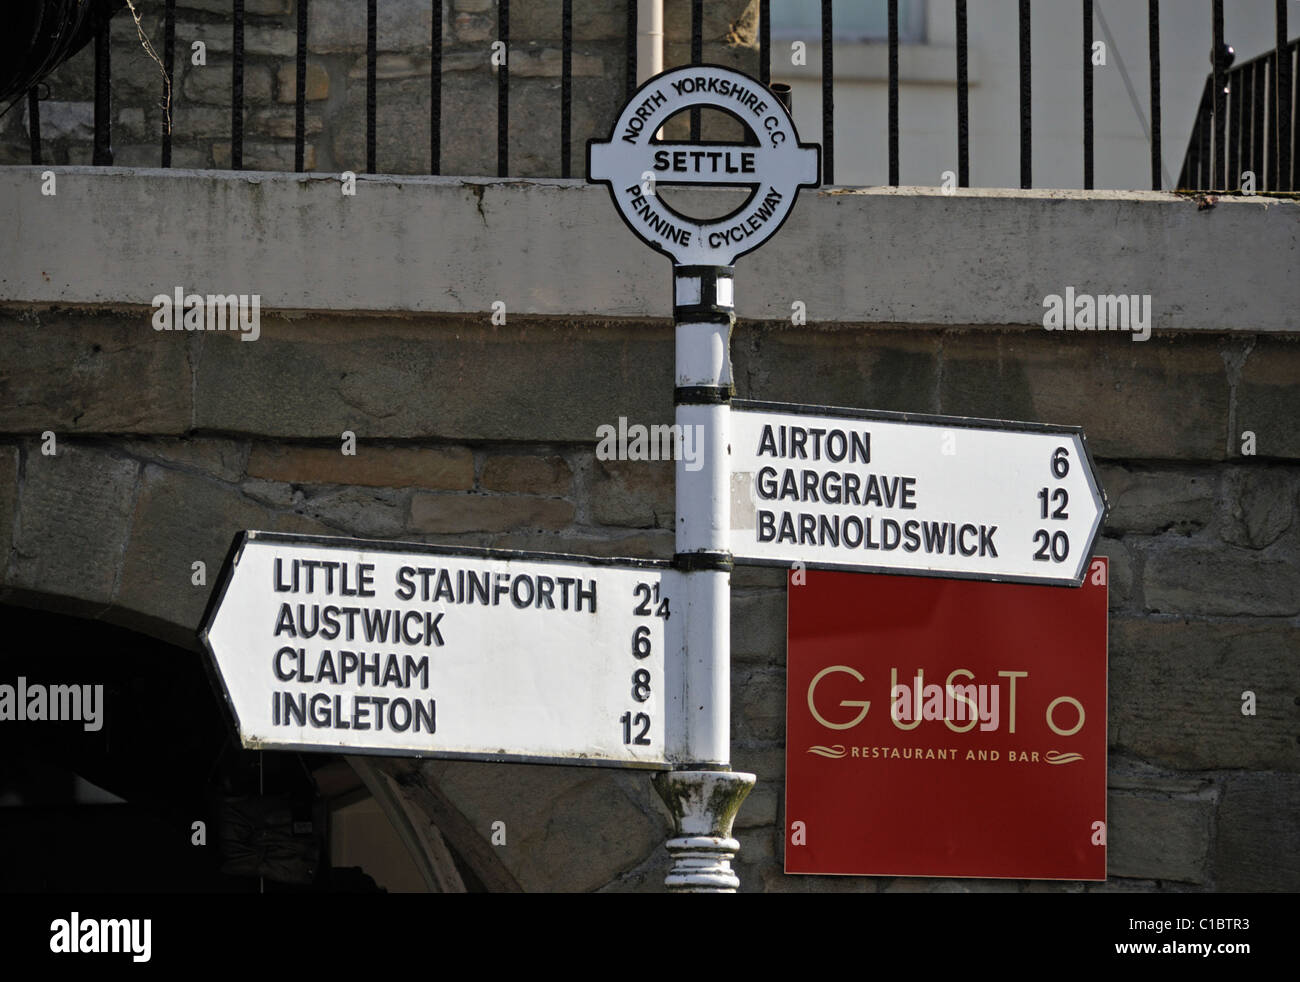 Road sign, Pennine Cycleway. Settle, North Yorkshire, England, United Kingdom, Europe. - Stock Image